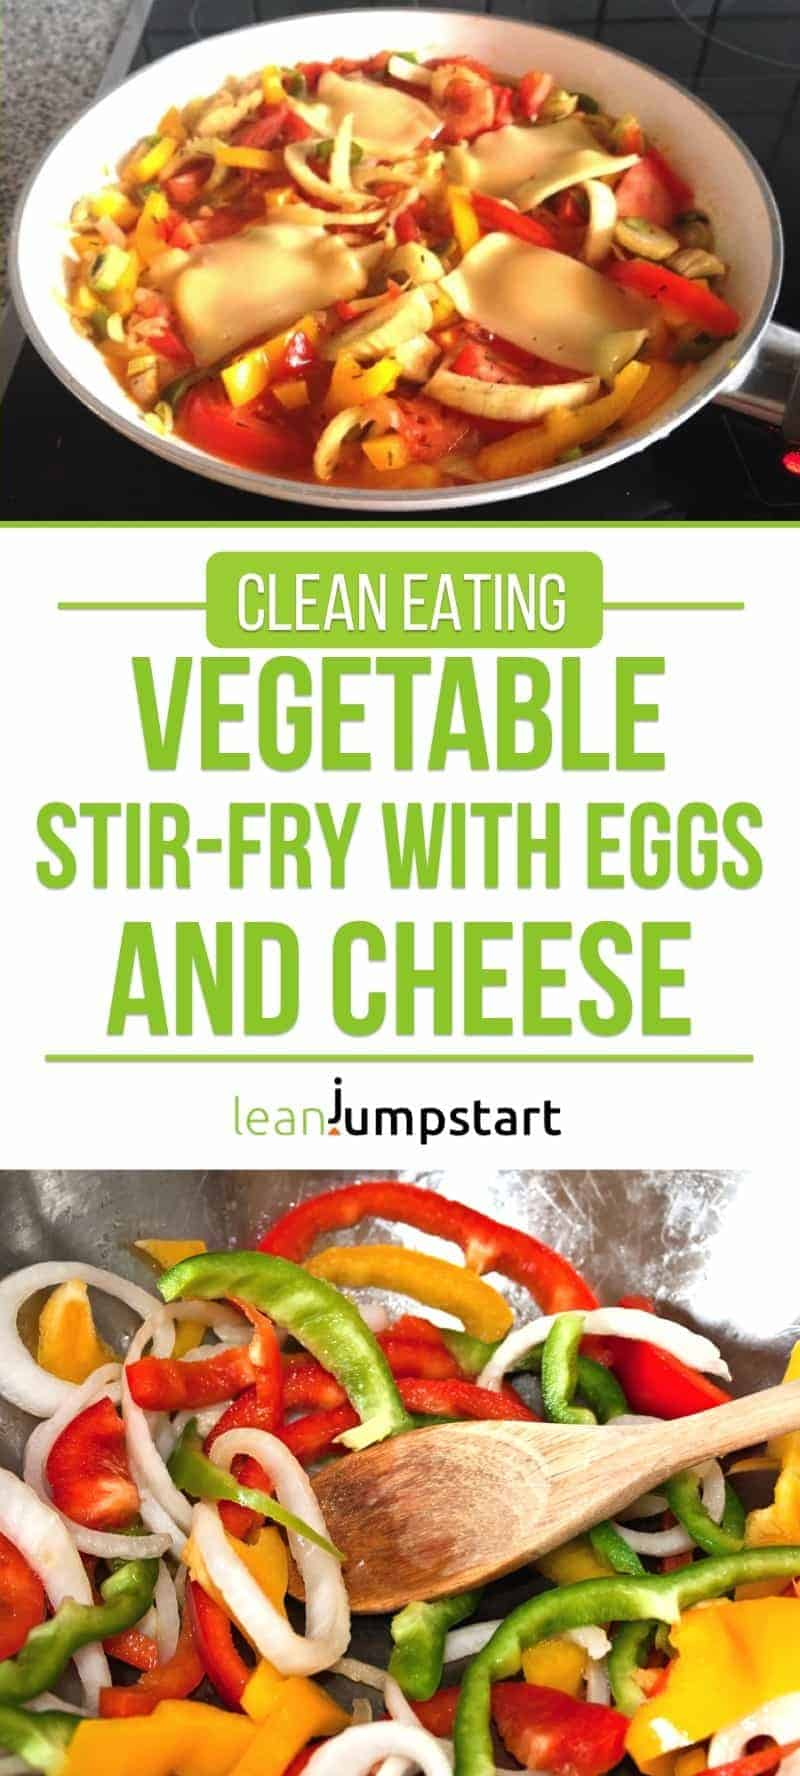 clean eating vegetable stir-fry with eggs and cheese